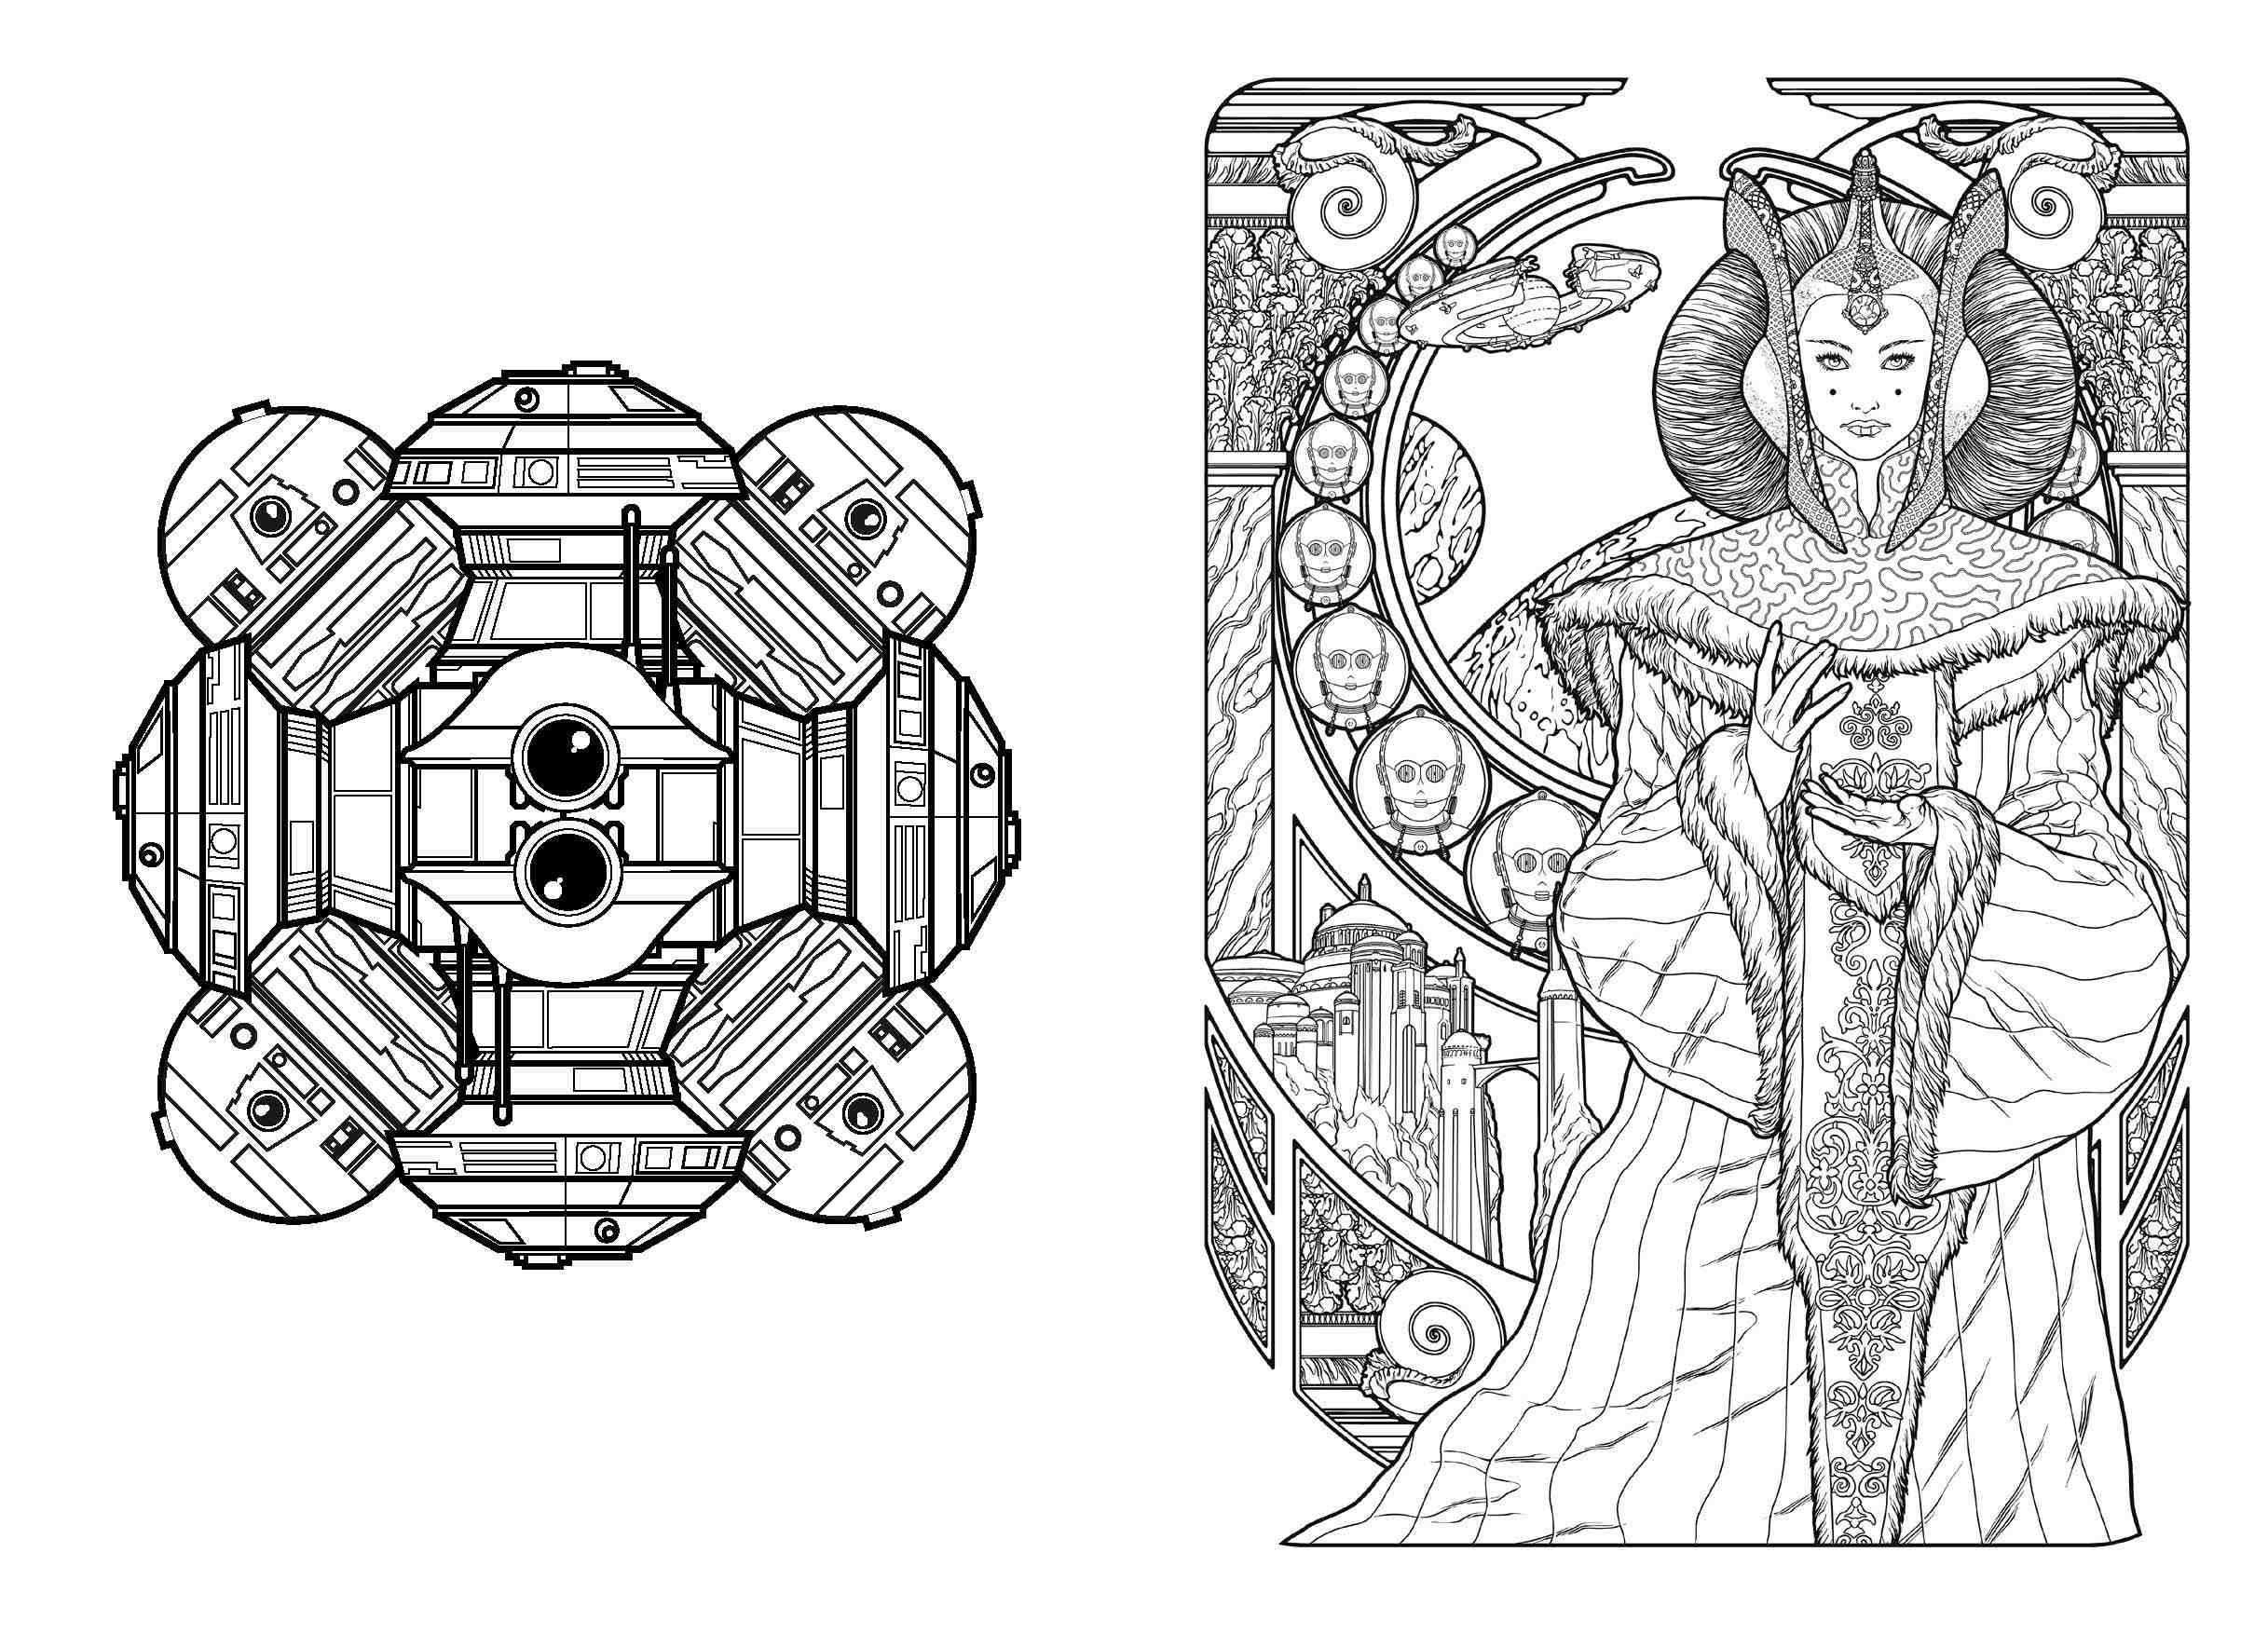 star wars coloring pictures star wars printable coloring pages hubpages star coloring pictures wars